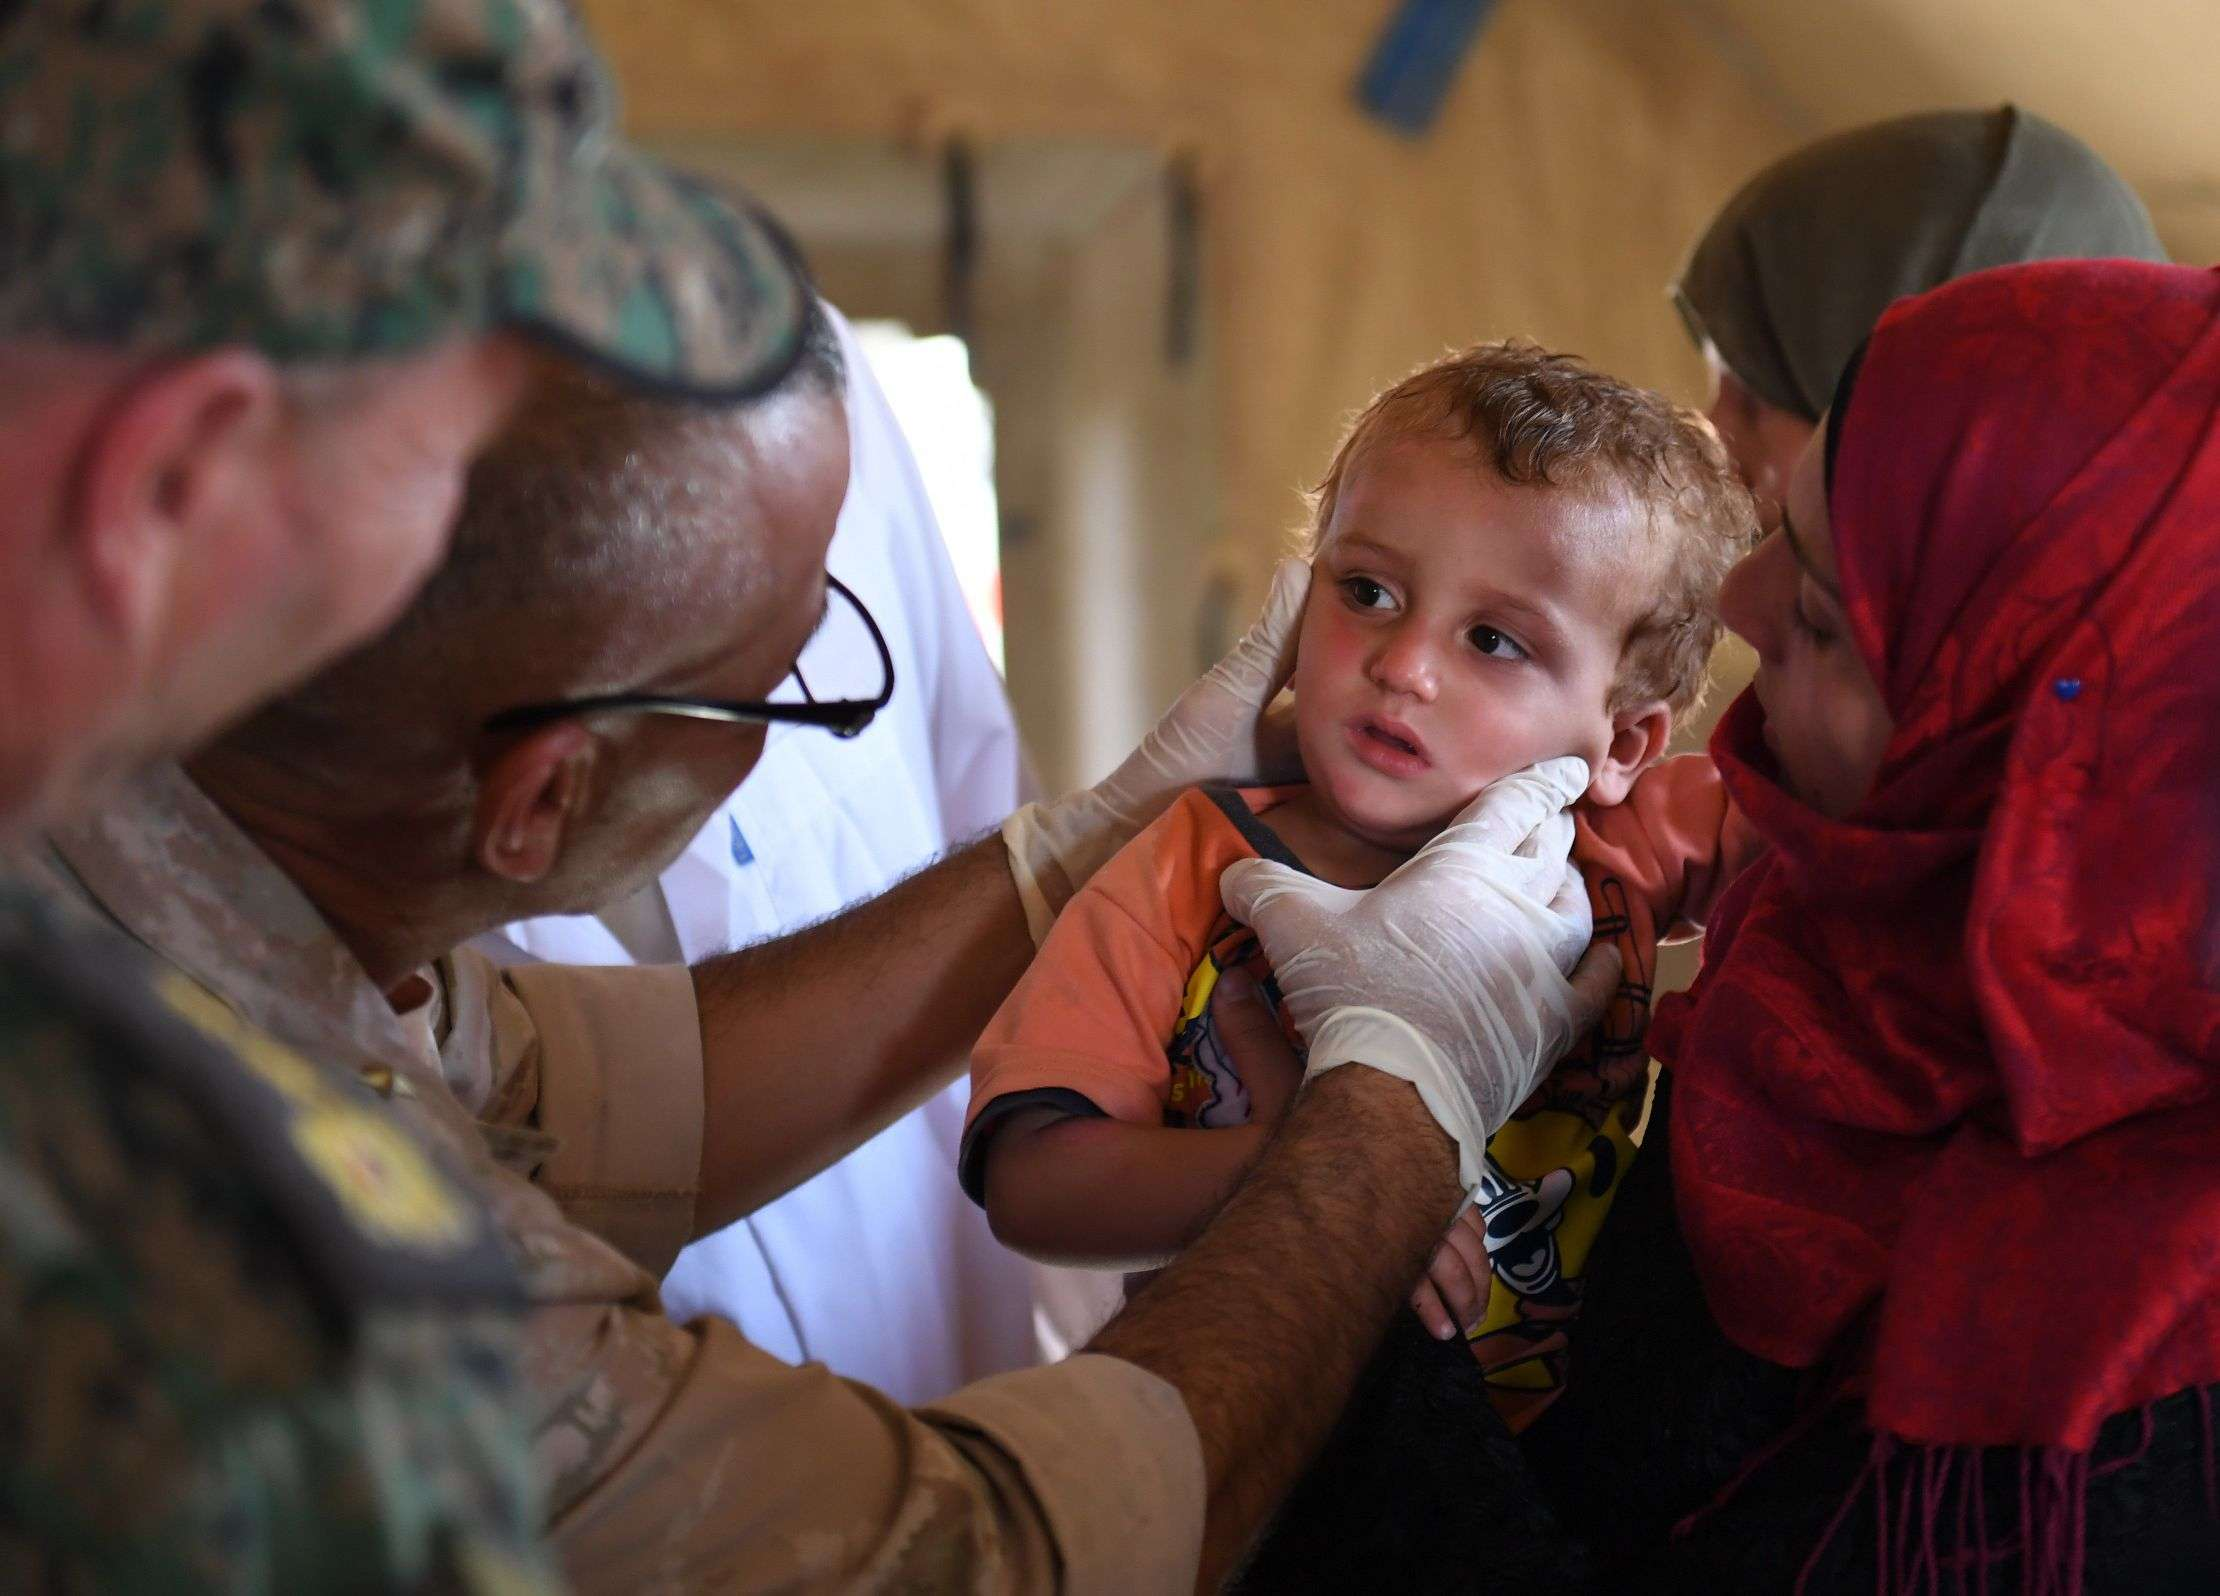 Charm offensive. A Russian soldier gives medical aid to Syrians at the Abu Duhur crossing on the eastern edge of Idlib province, on September 25. (AFP)